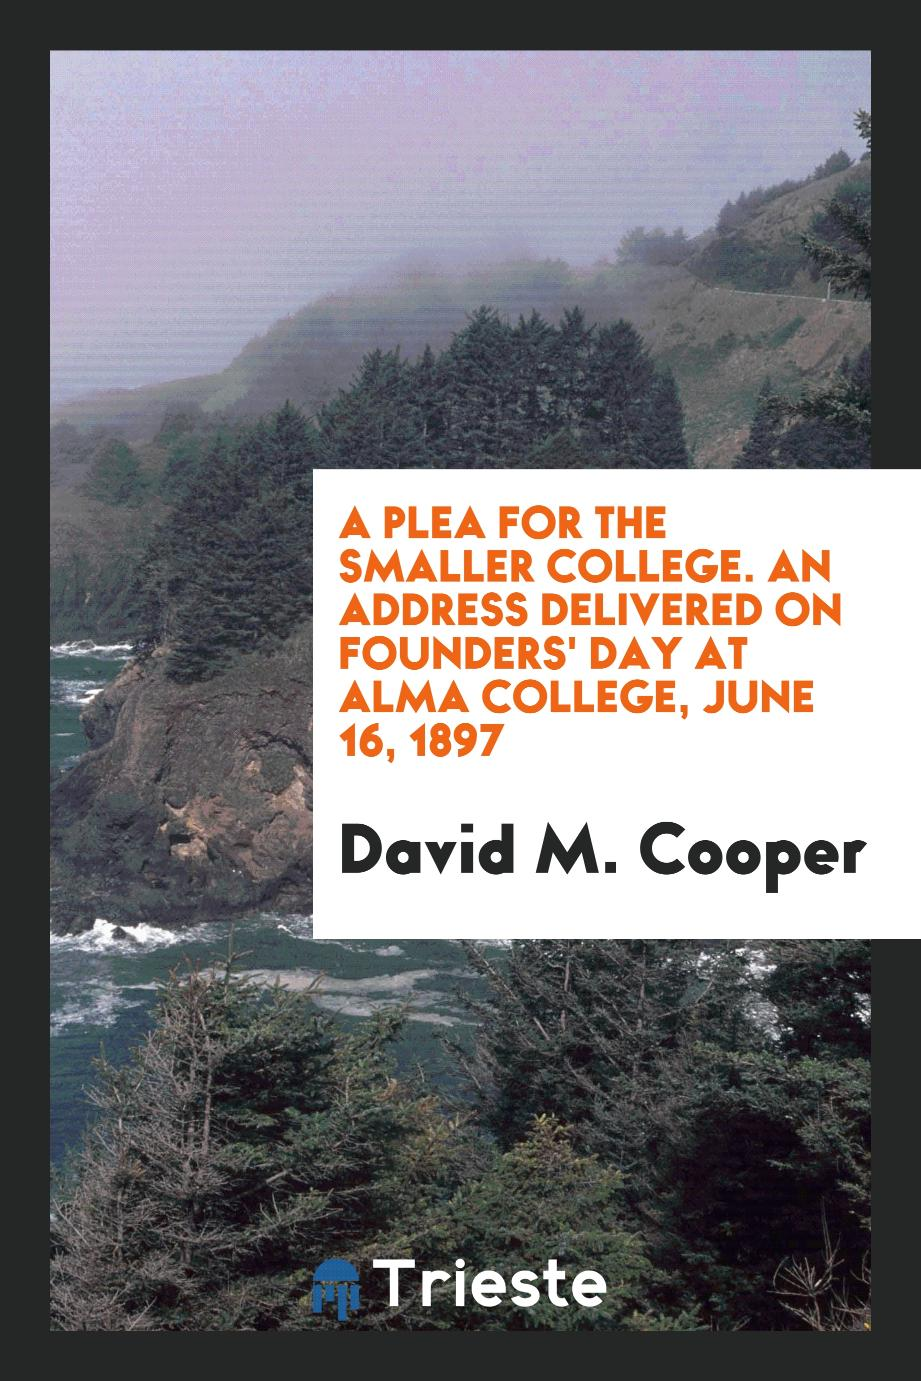 A plea for the smaller college. An address delivered on Founders' day at Alma college, June 16, 1897